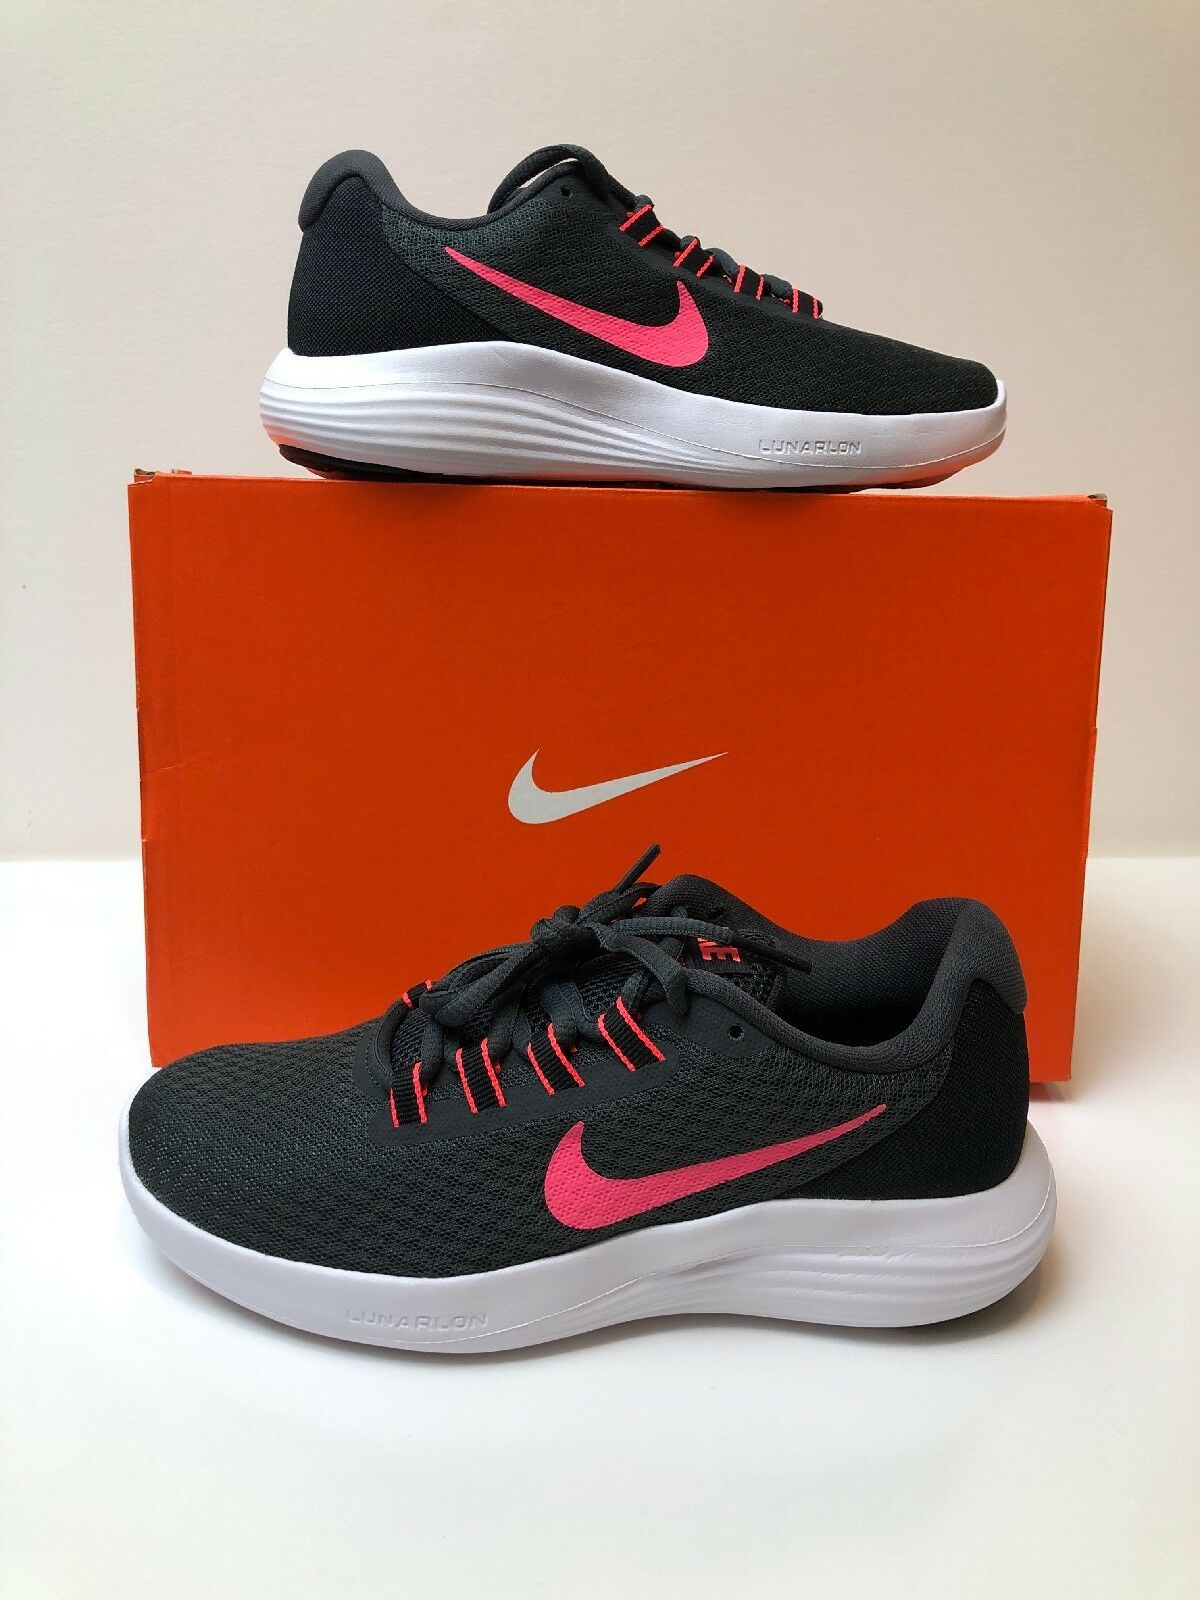 Womens Nike Lunarconverge 852469-002 Anthracite Hot Pinch Brand Brand Brand New. Size 8 cccd2d